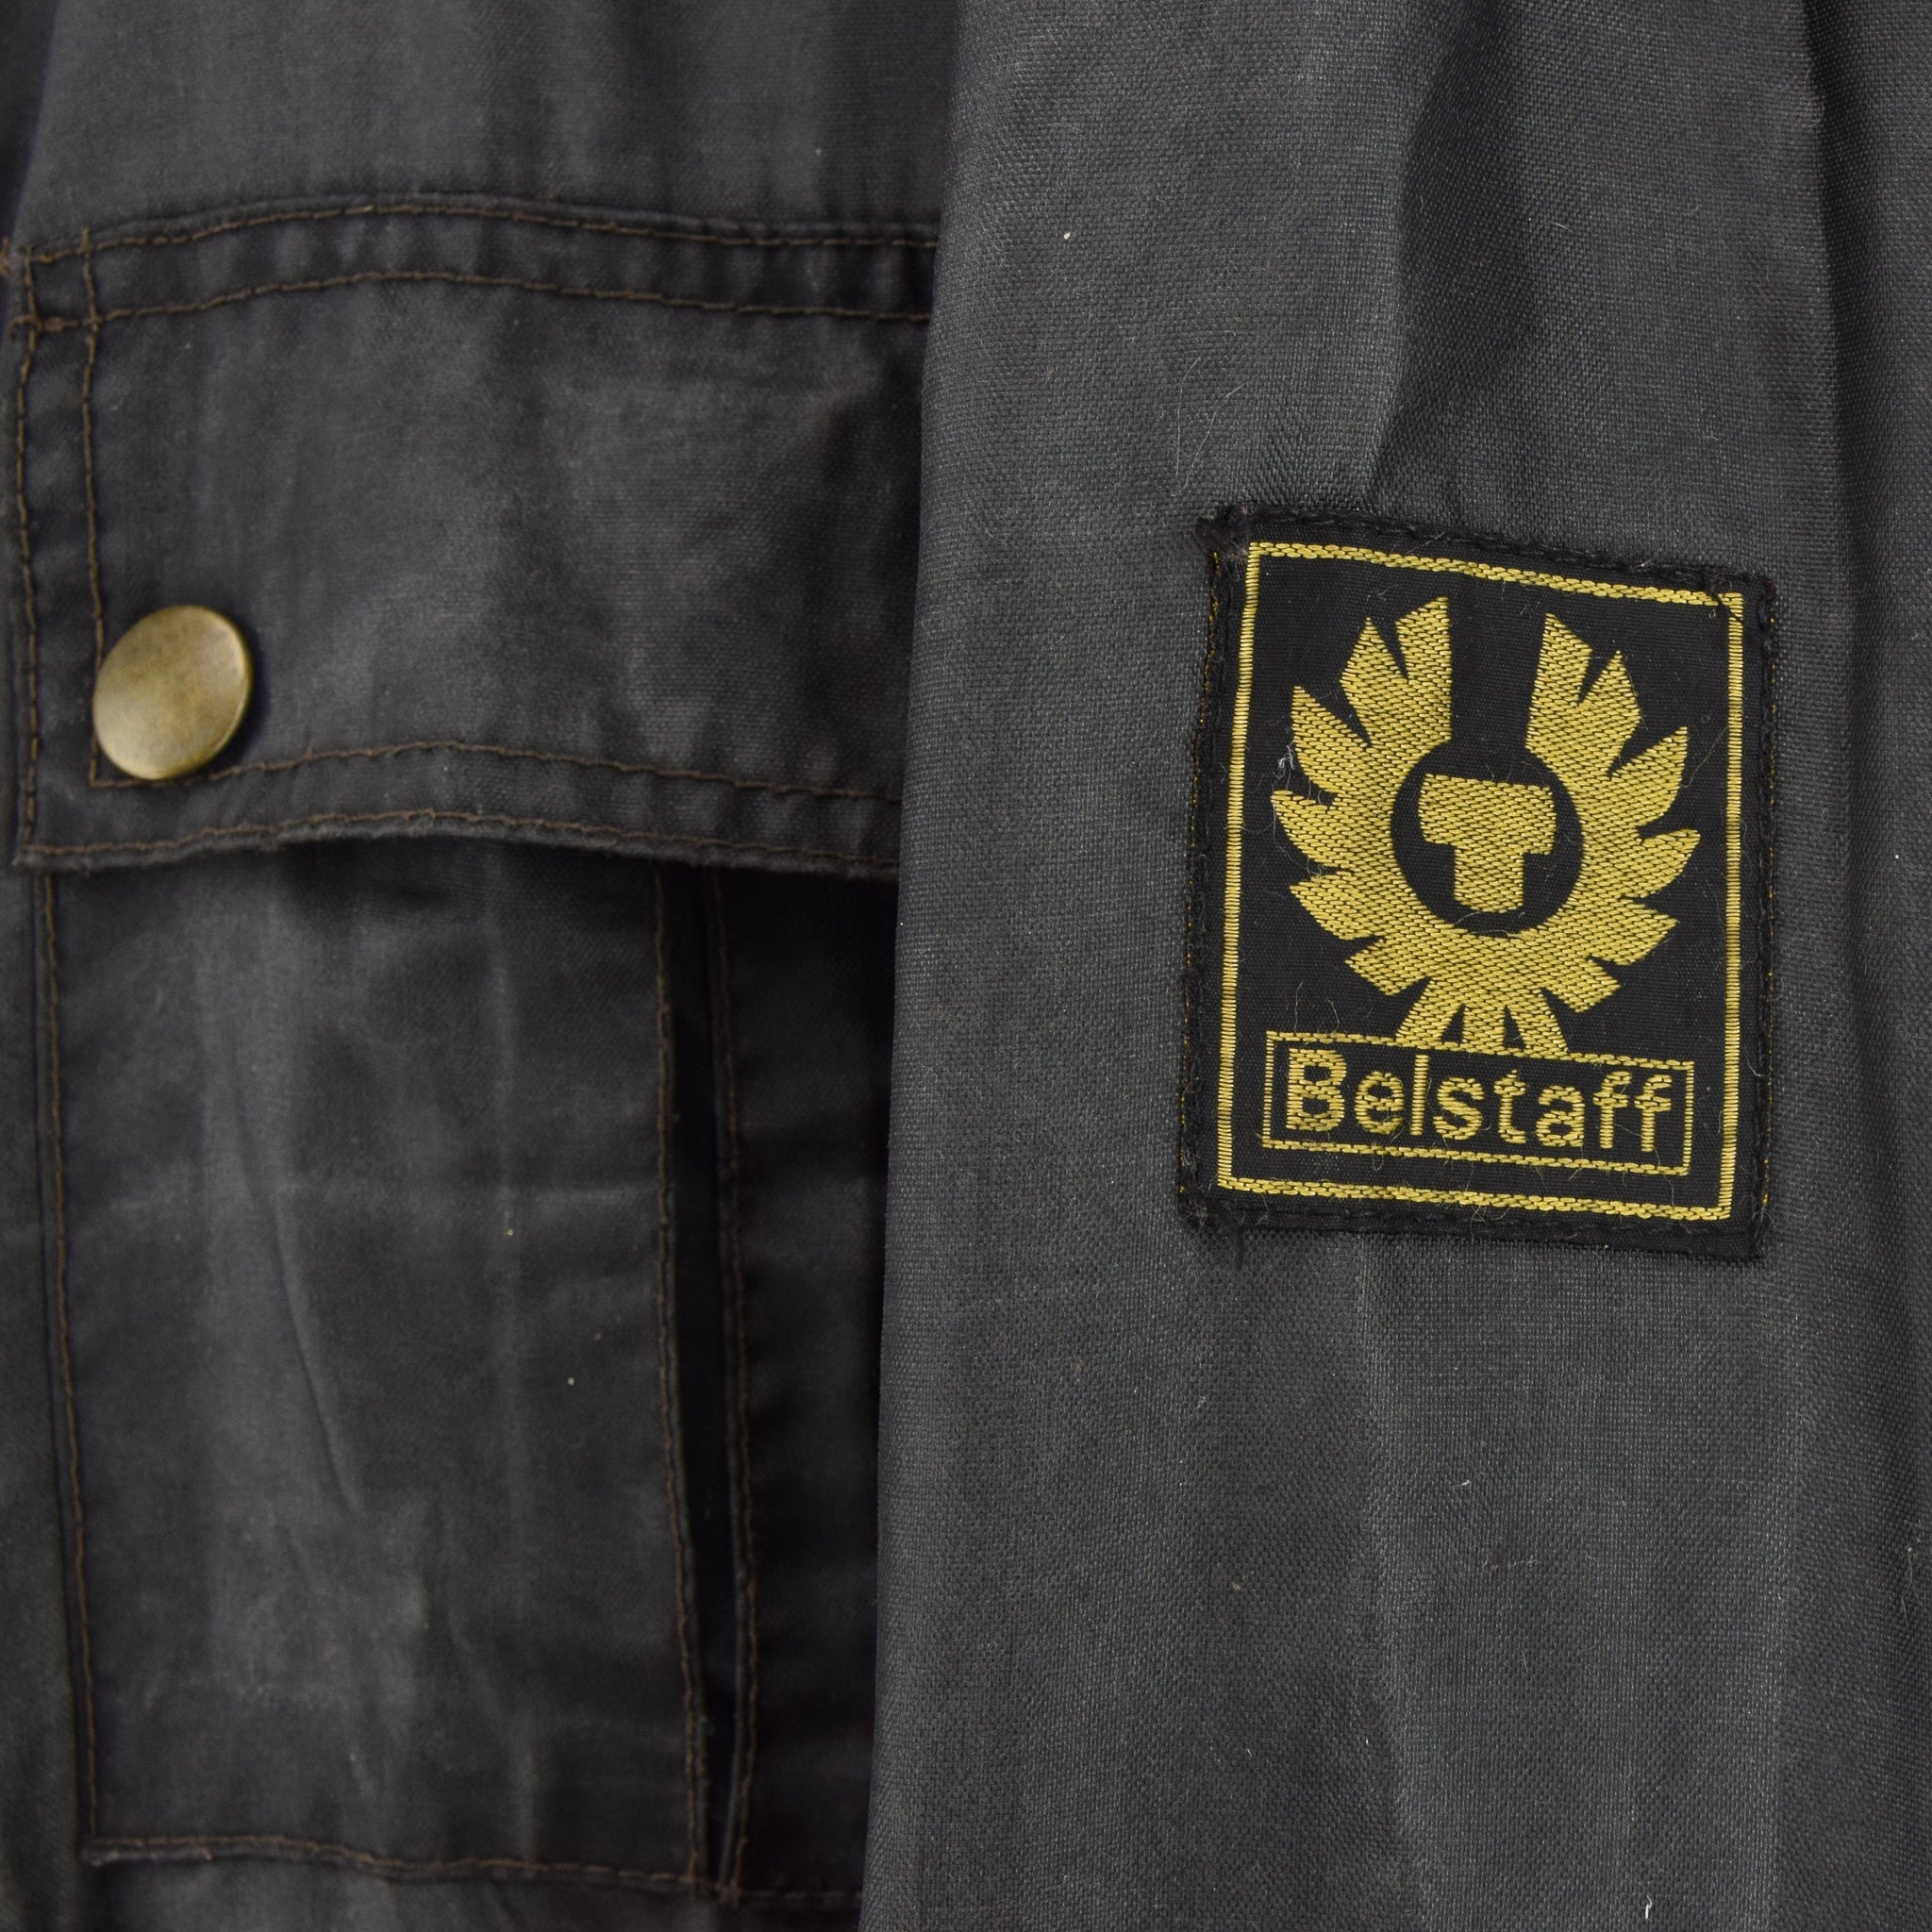 Belstaff Uranium Jubilee 80th Anniversary Short Nylon Biker Jacket L / XL label